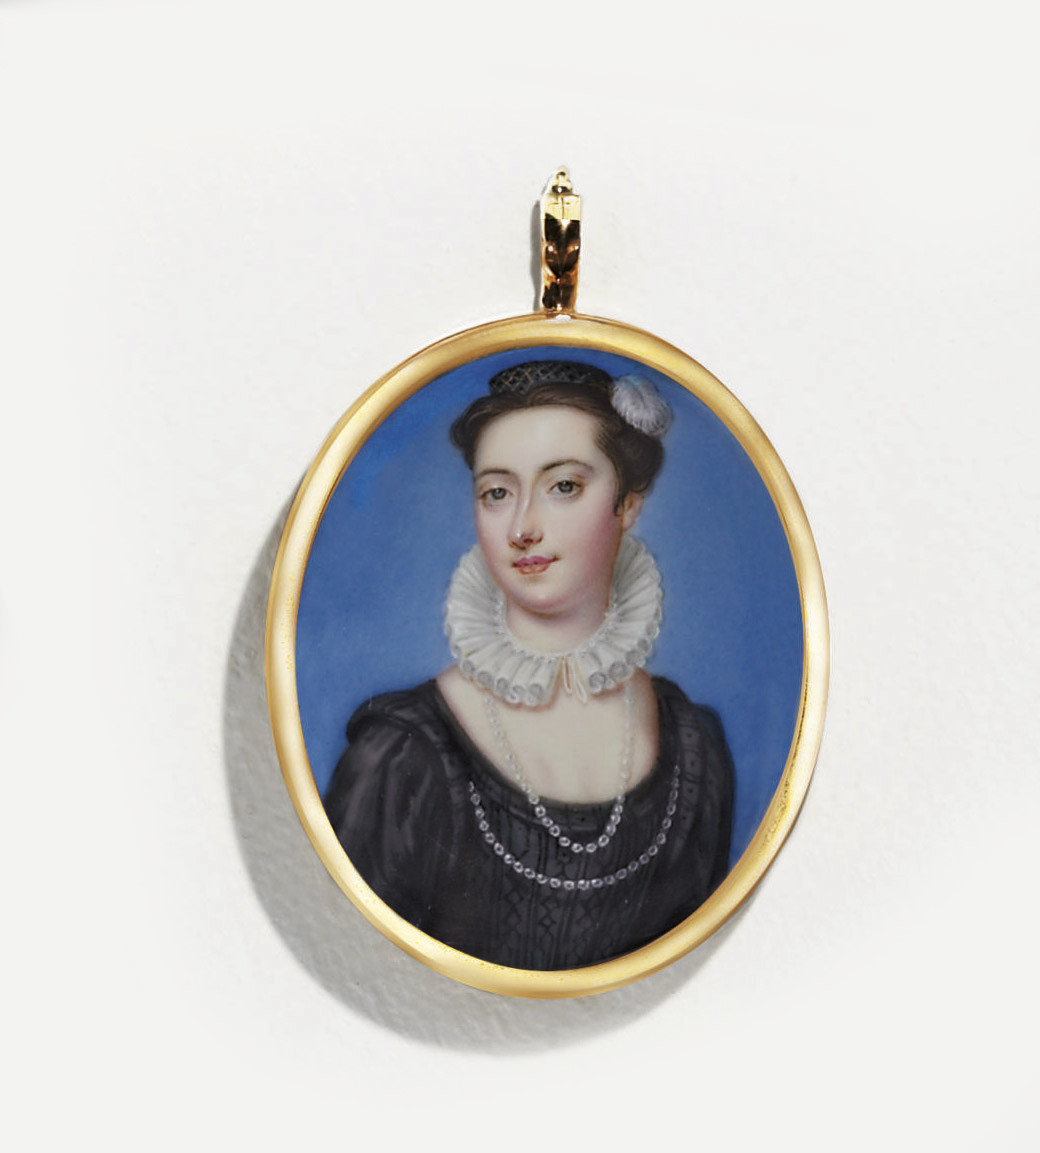 Mary Campbell, née Bellenden (bap. 1685, d. 1736), in black Renaissance-style dress, pearl strand suspended across the bodice, pearl necklace, white ruff with lace band, a gold embroidered black cap with white feather in her upswept dark brown hair